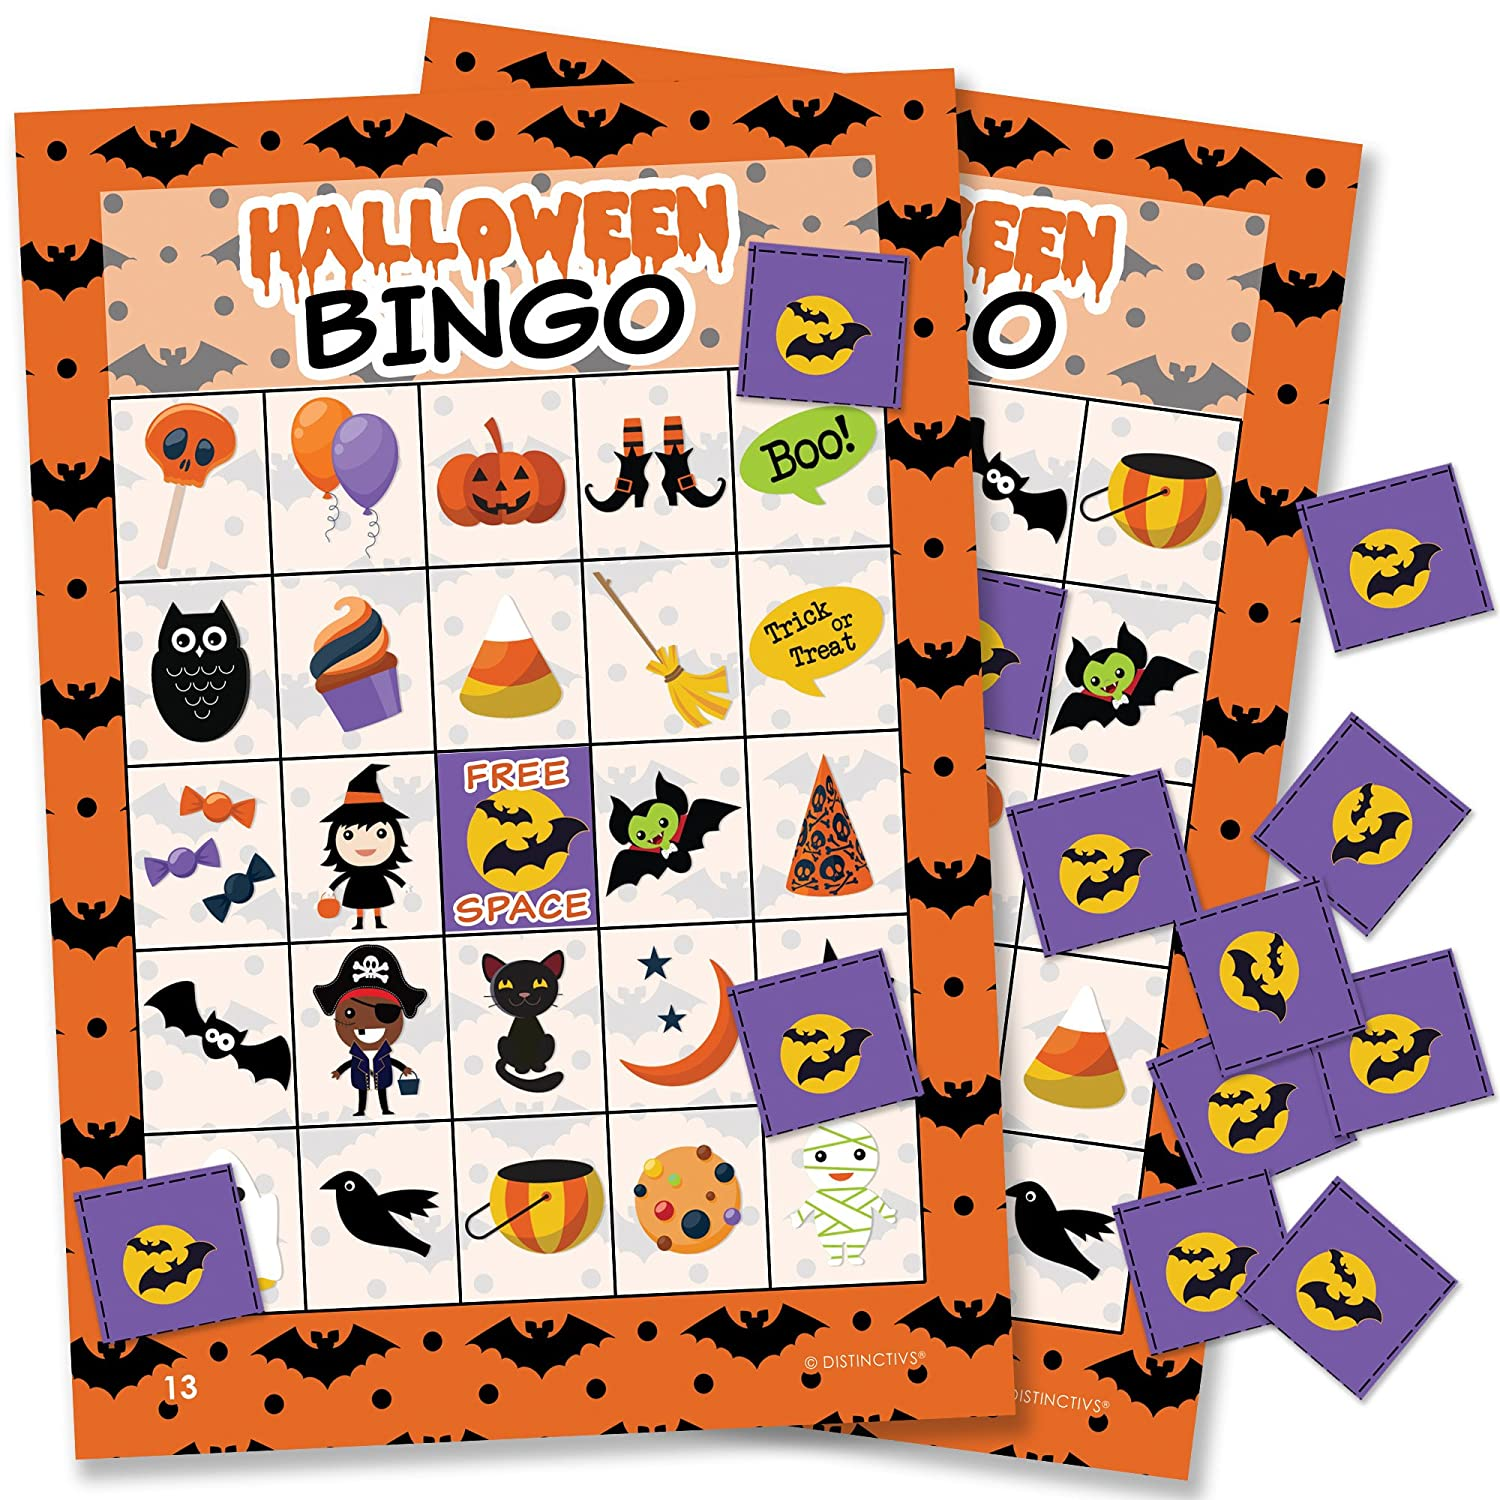 graphic regarding Halloween Bingo Printable named Halloween Bingo Video game for Small children - 24 Avid gamers